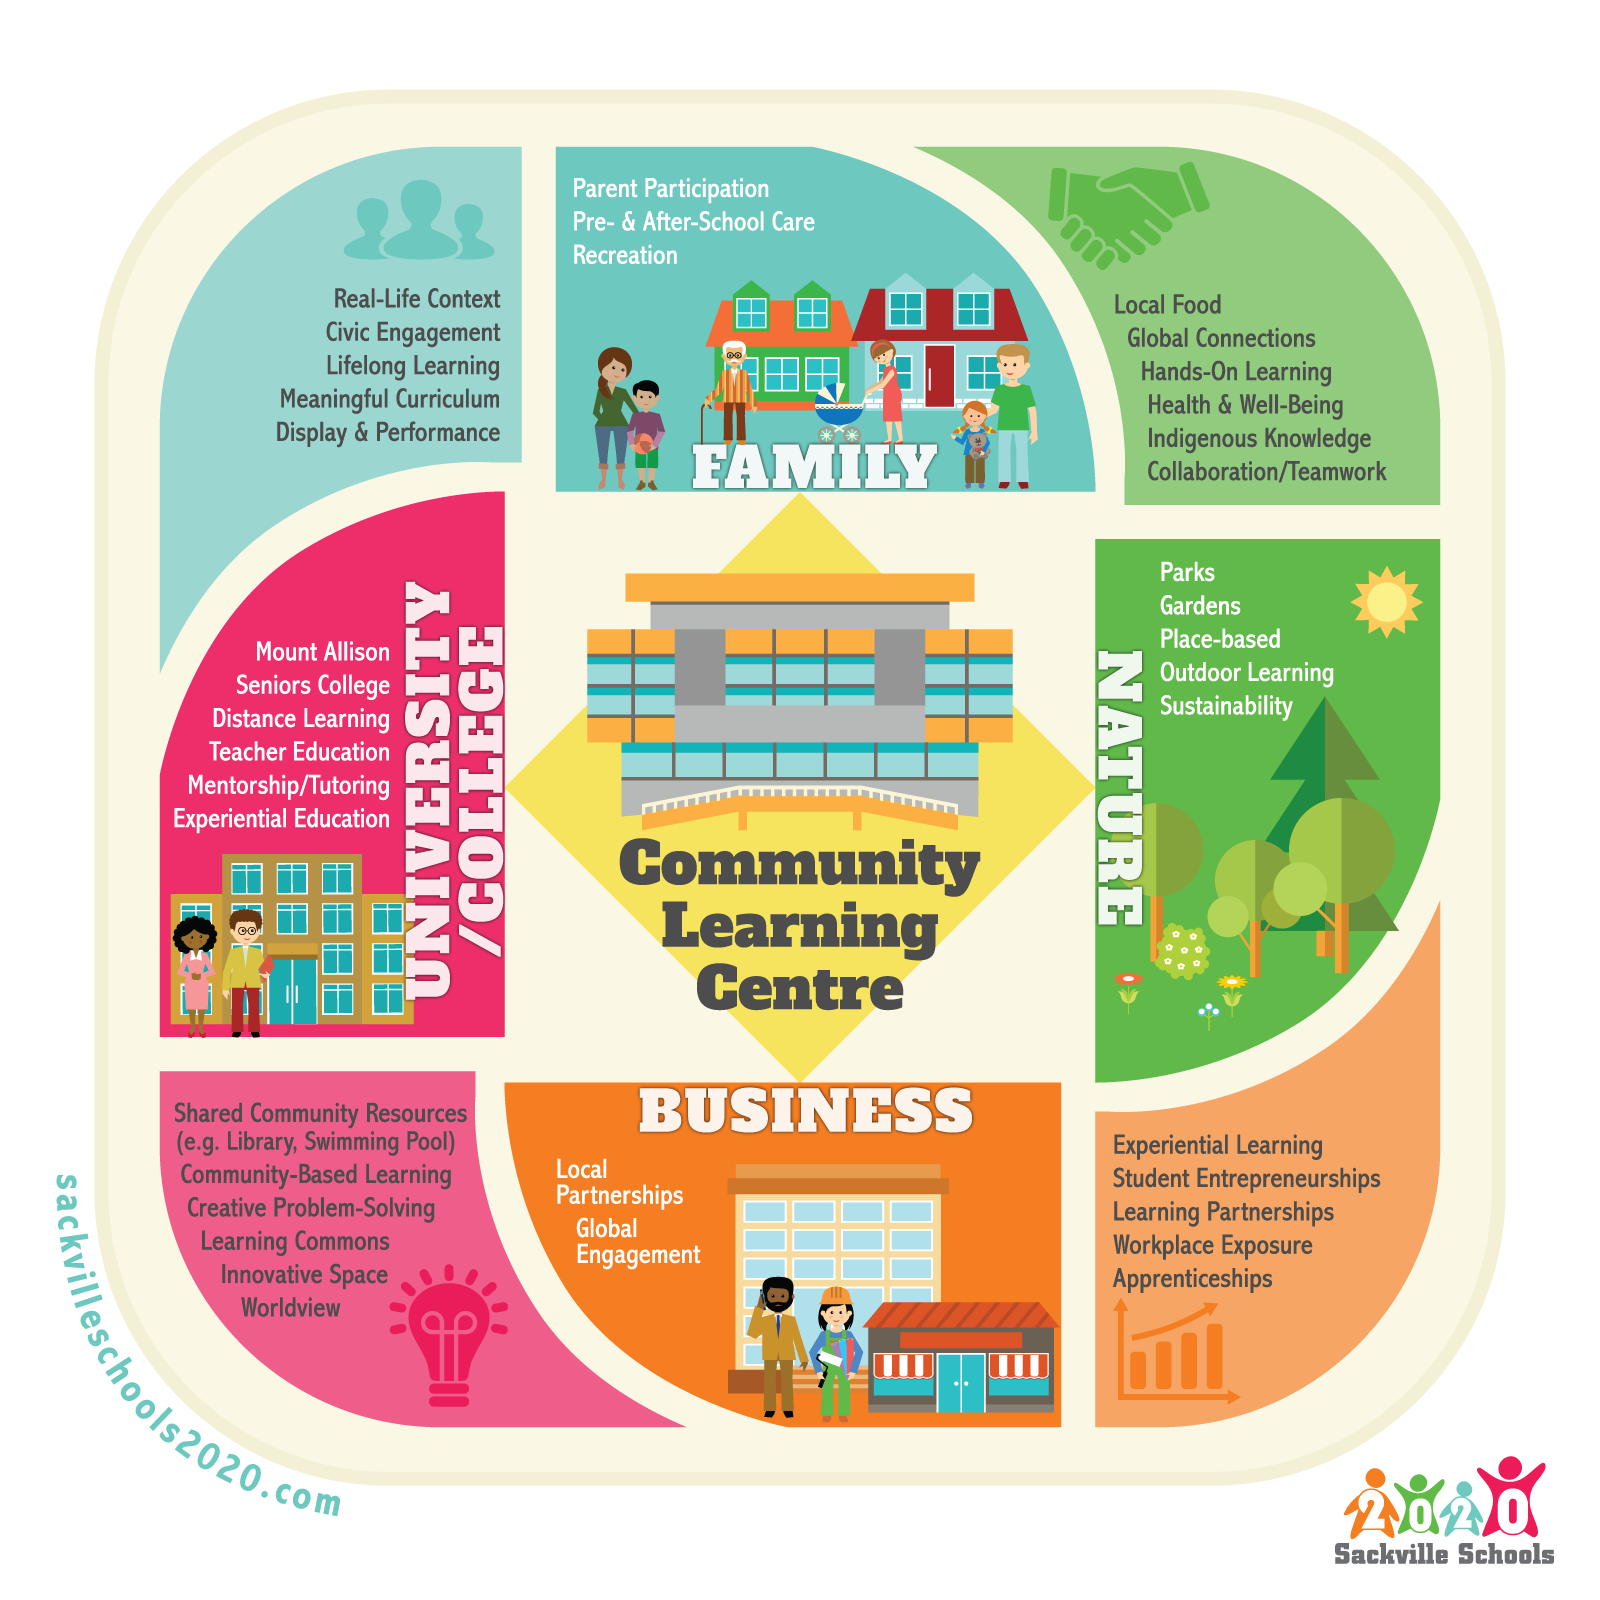 A Community Learning Centre or Hub would ensure that education is enriched and connected to the many wonderful resources that Sackville has to offer, including families, businesses, nature, and post-secondary learning.